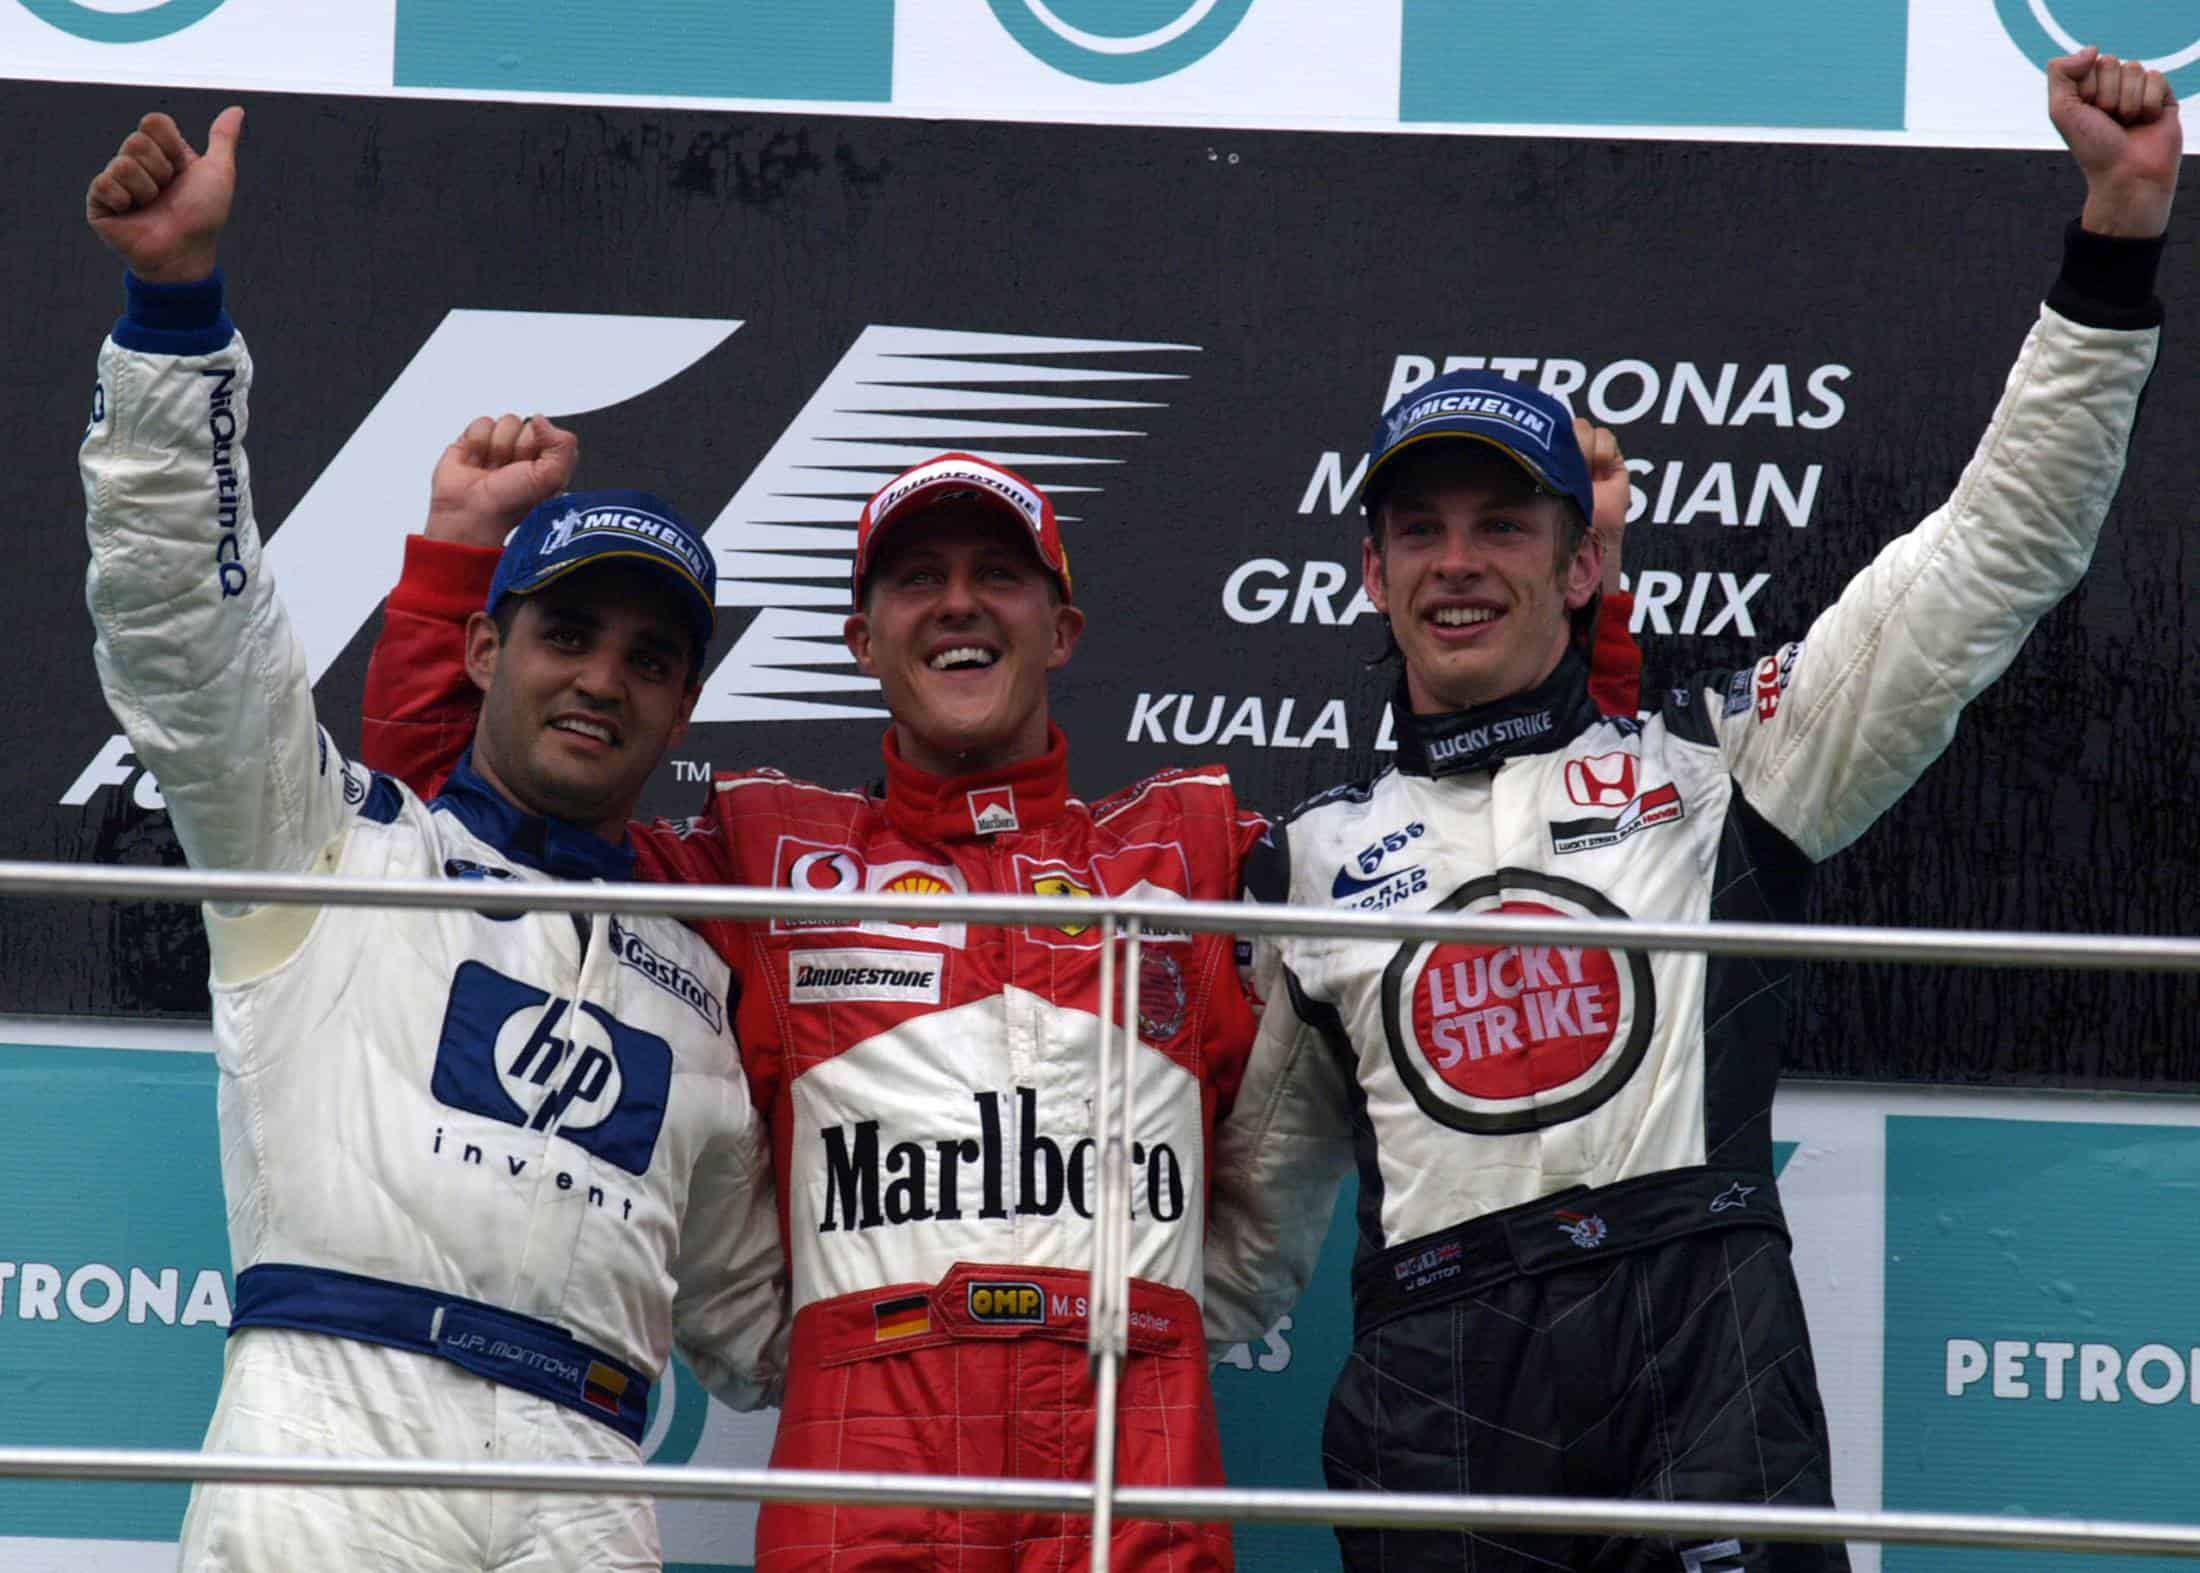 2004-Malaysian-GP-F1-podium-Michael-Schumacher-Montoya-Button-Photo-Ferrari